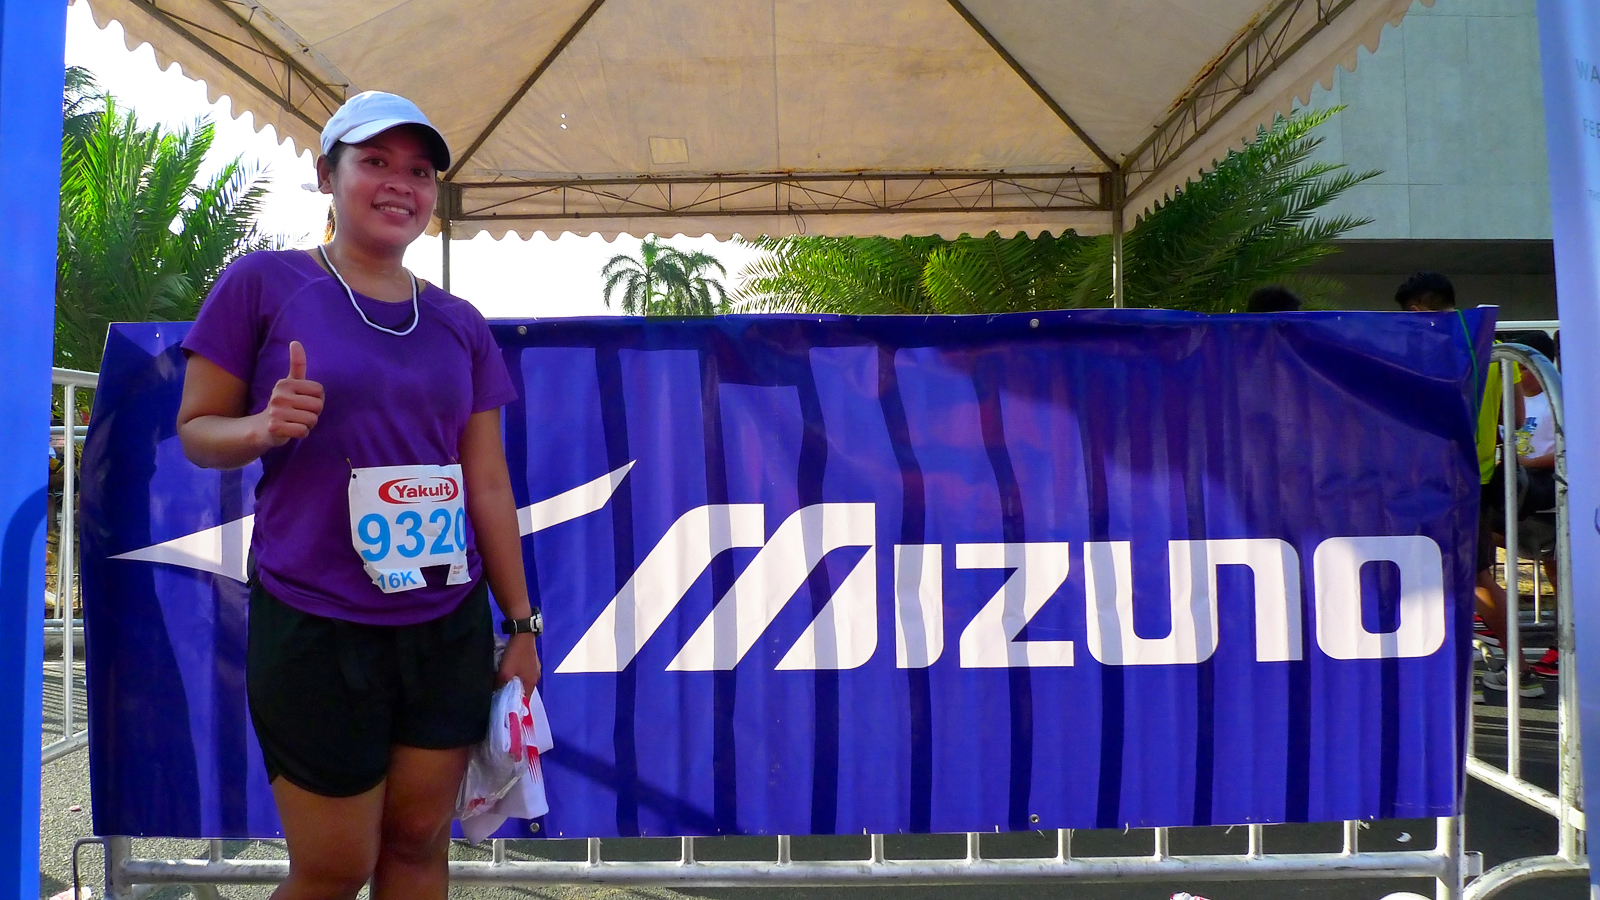 My 2nd 10-miler at the Yakult 25th Run